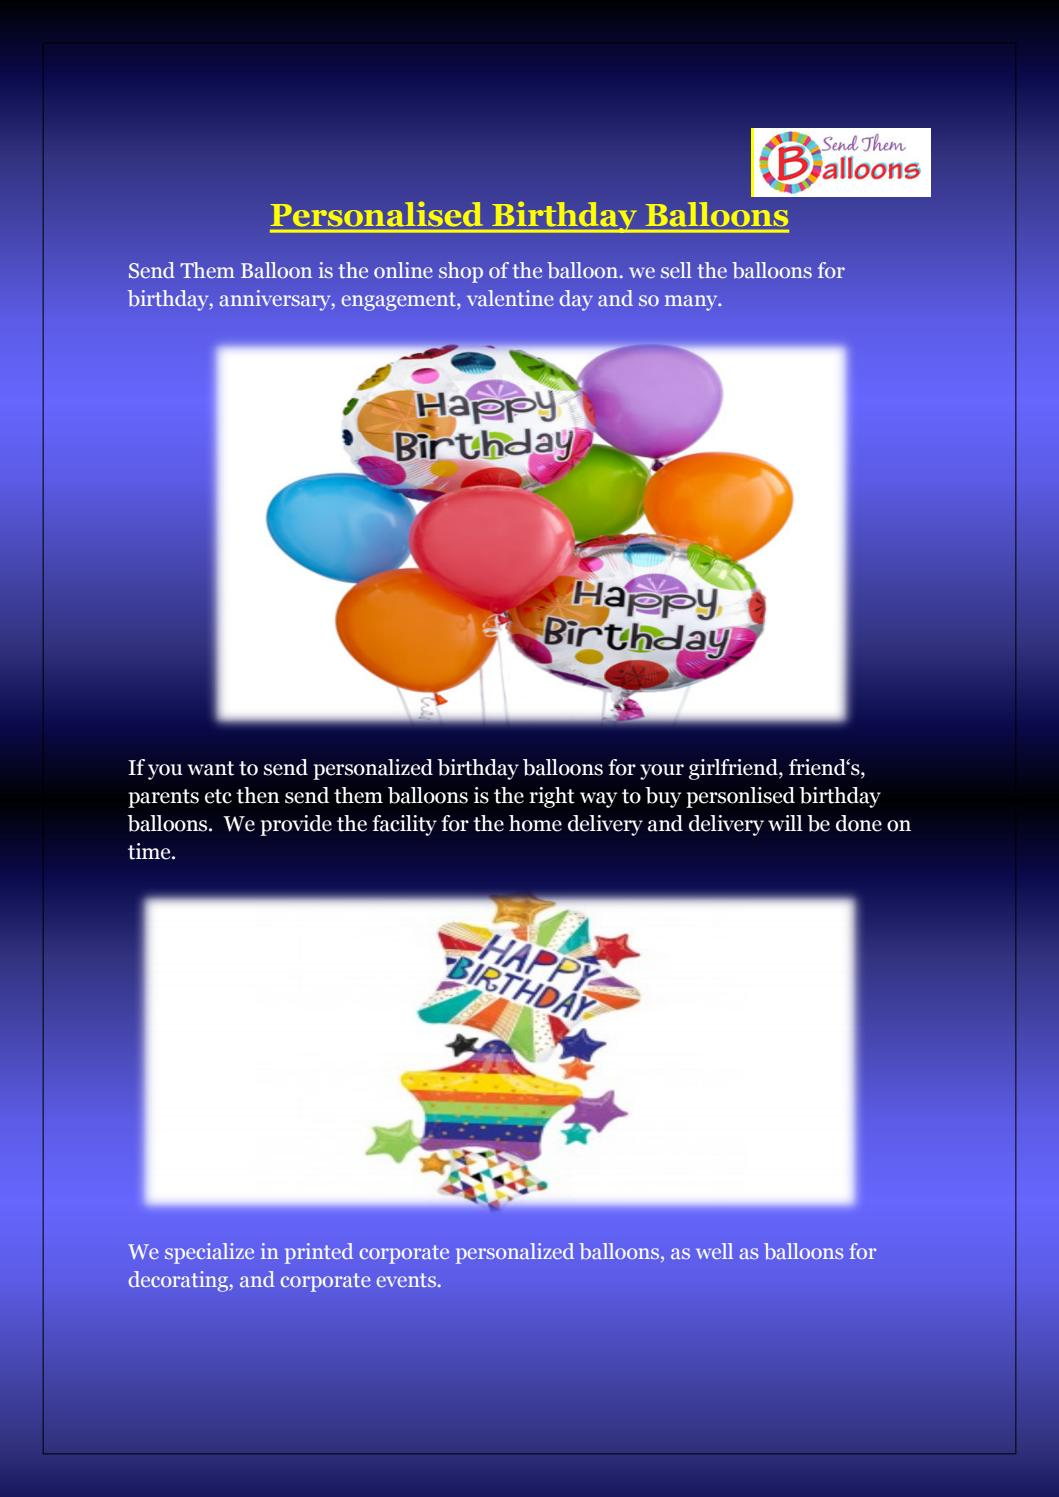 Personalised Birthday Balloons By Send Them